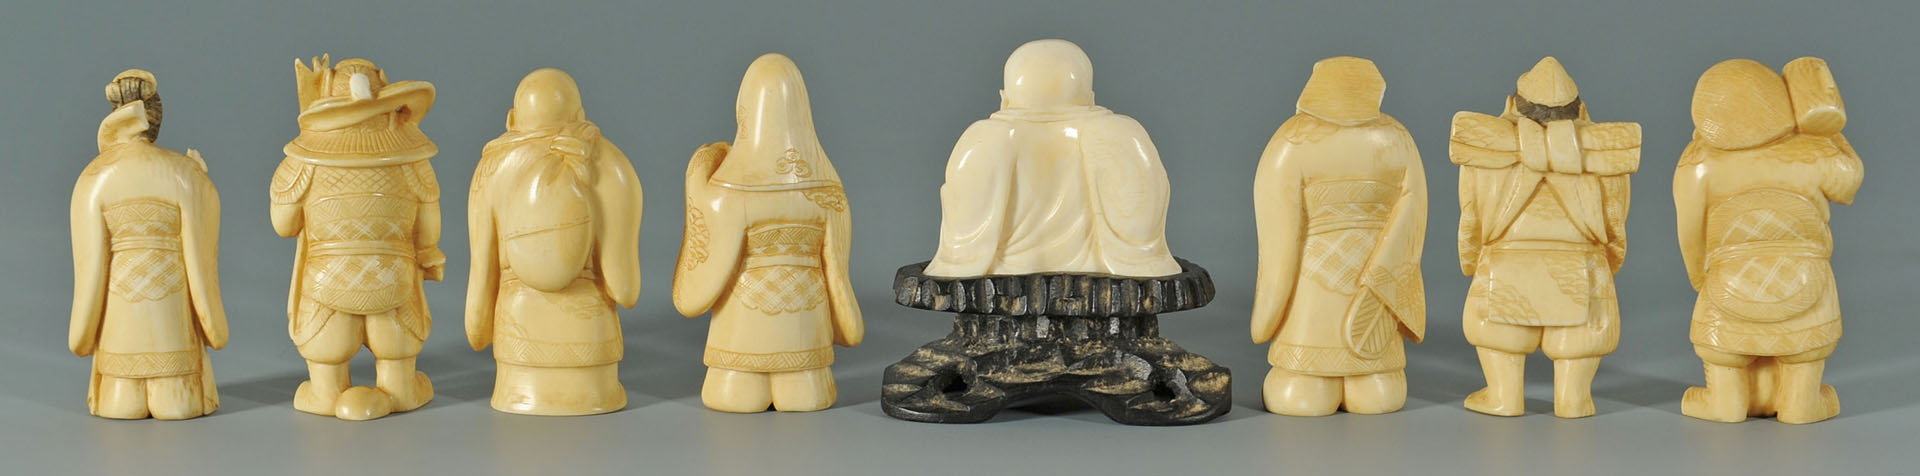 Lot 252: 8 Chinese Carved Ivory Figures